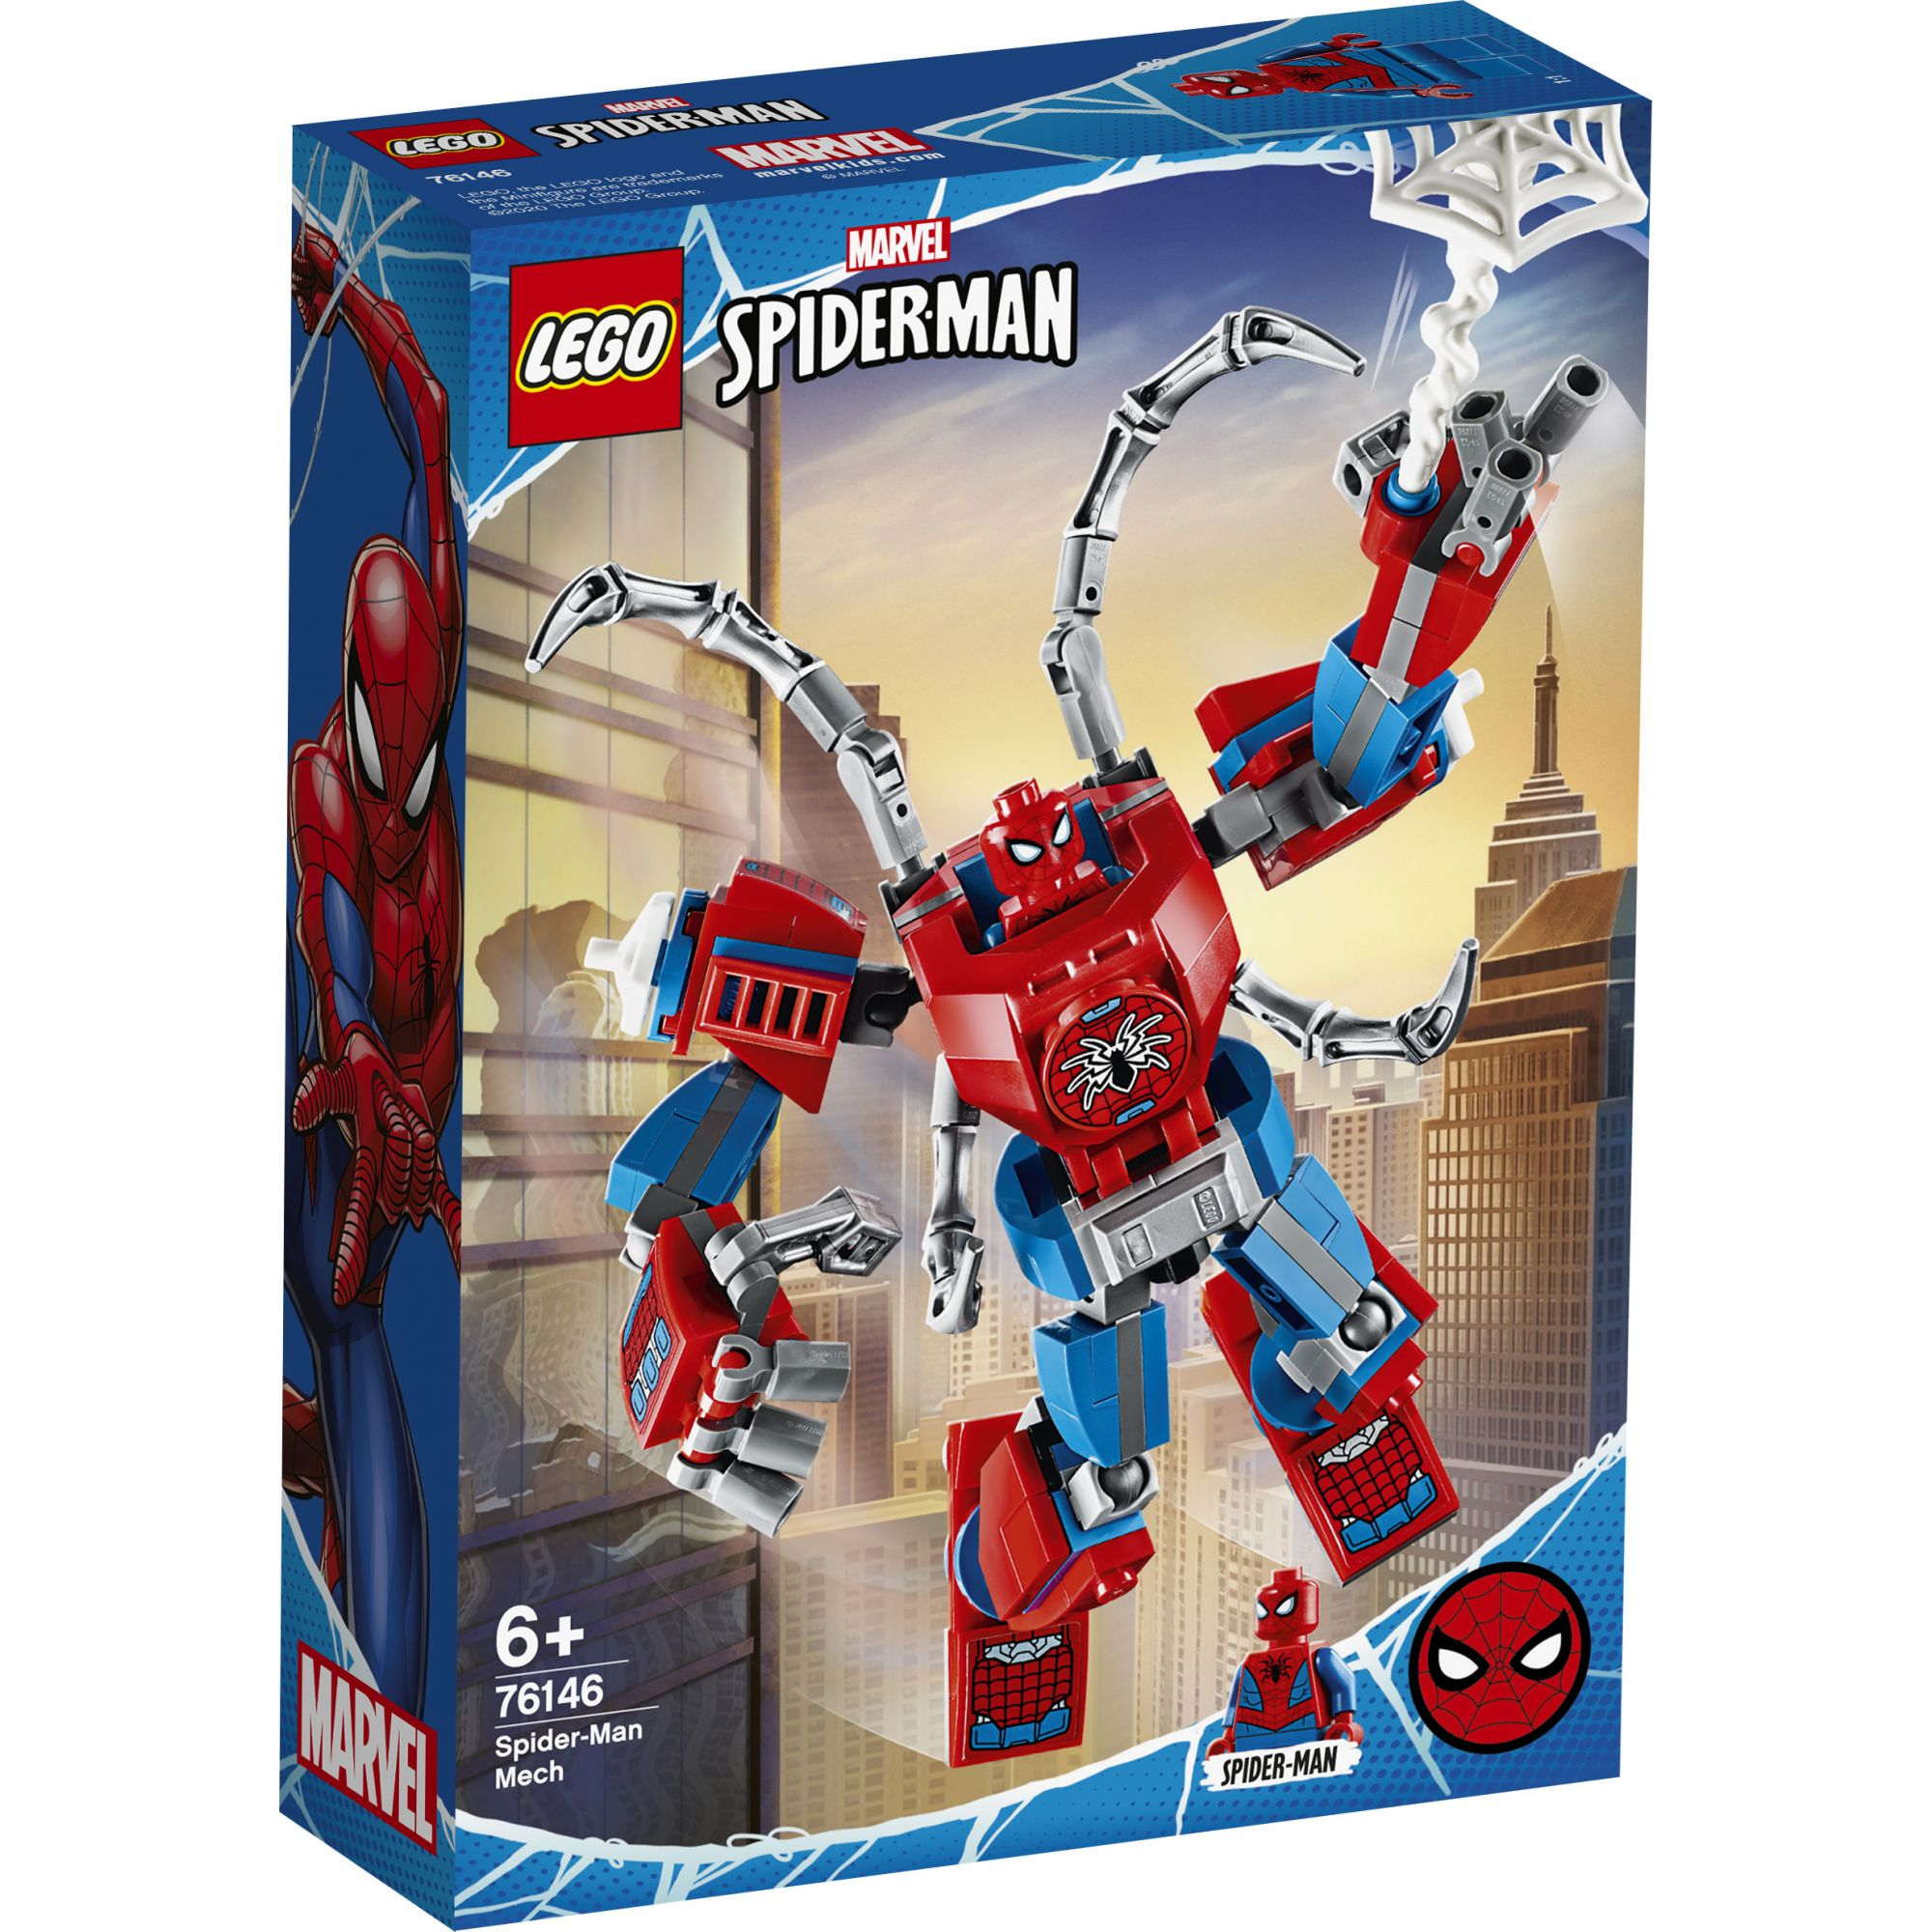 LEGO Marvel Super Heroes Mech Spider-Man - 76146